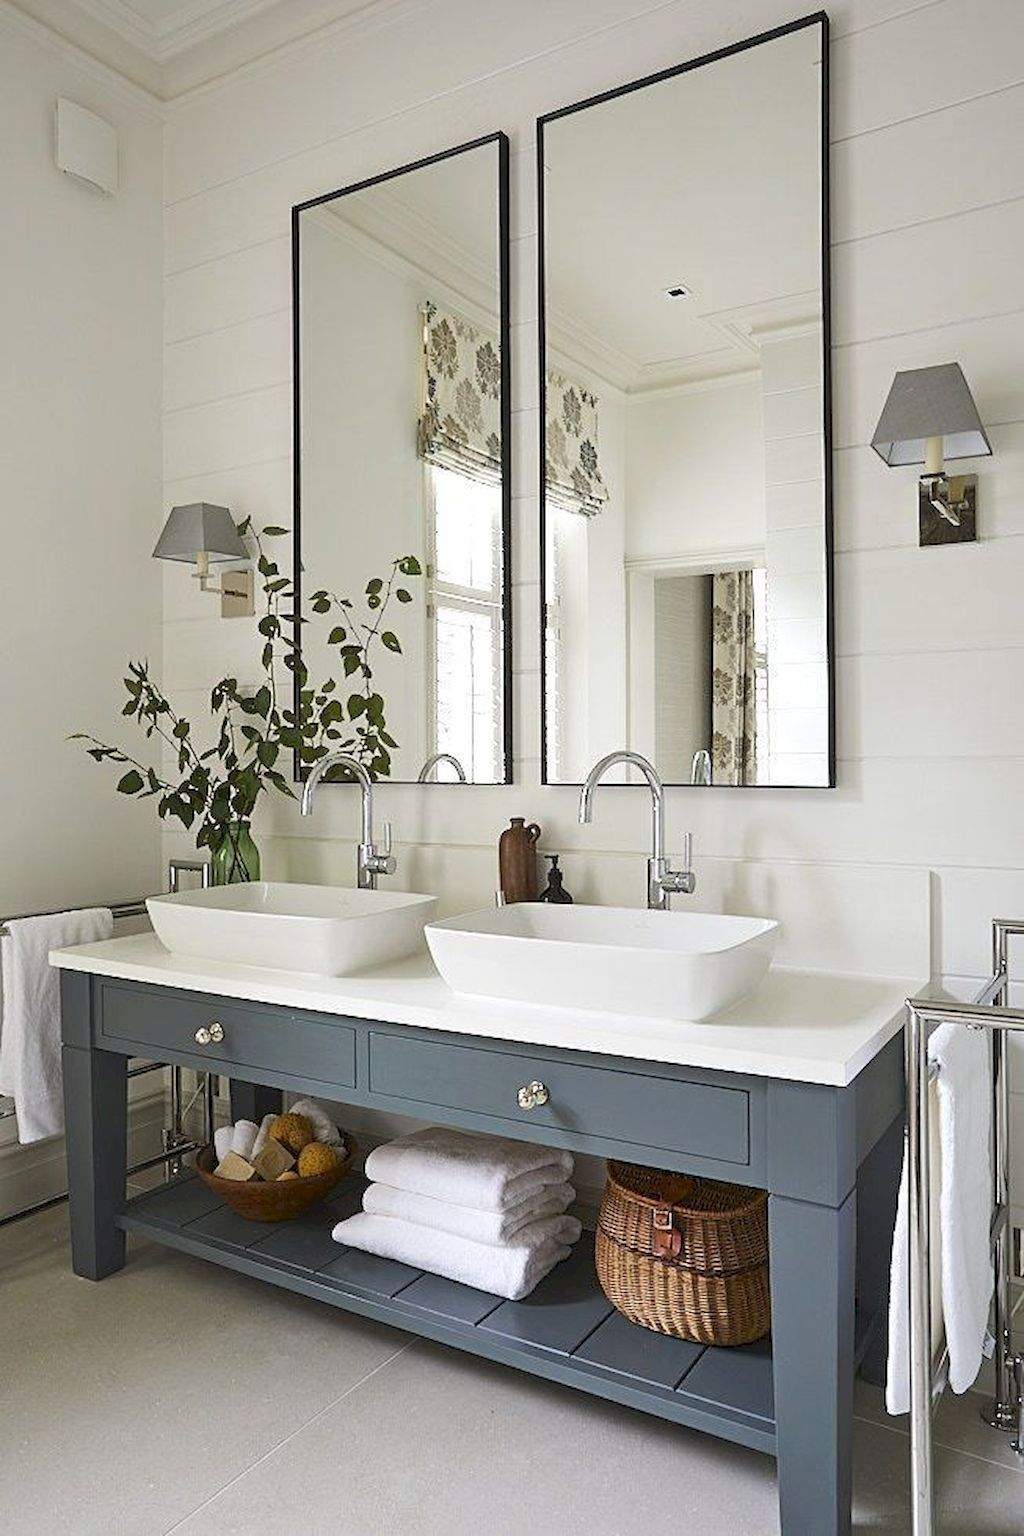 90 Beautiful Farmhouse Bathroom Remodel Ideas #bathroomrenoideas